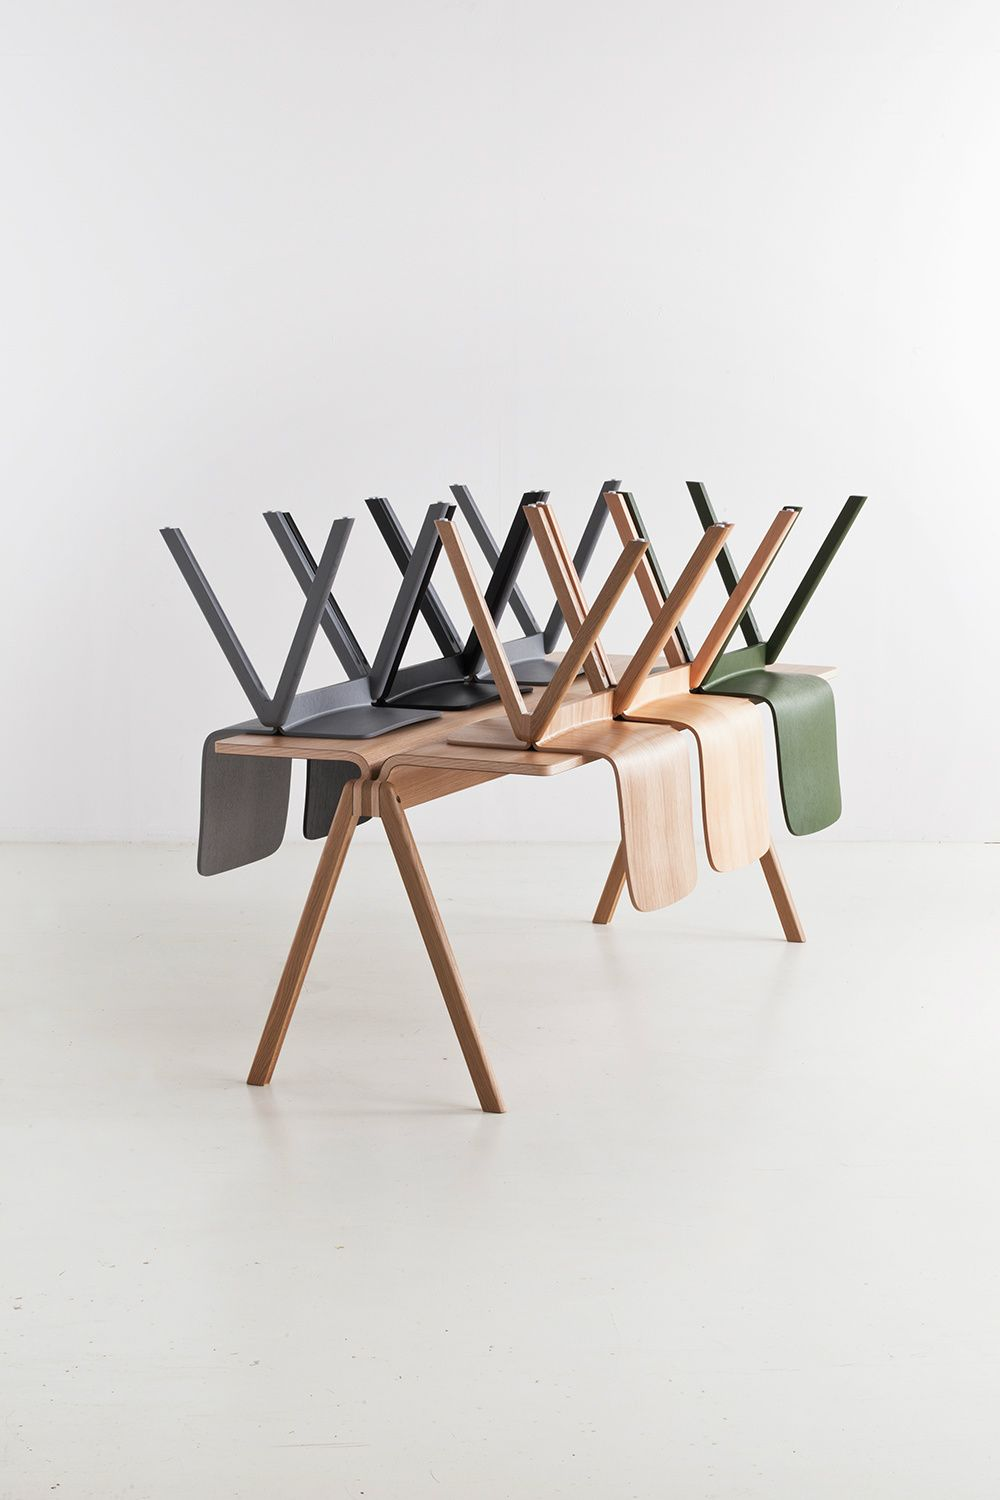 Stupendous Pin By I R F A N On I N S P I R E Plywood Table Dailytribune Chair Design For Home Dailytribuneorg